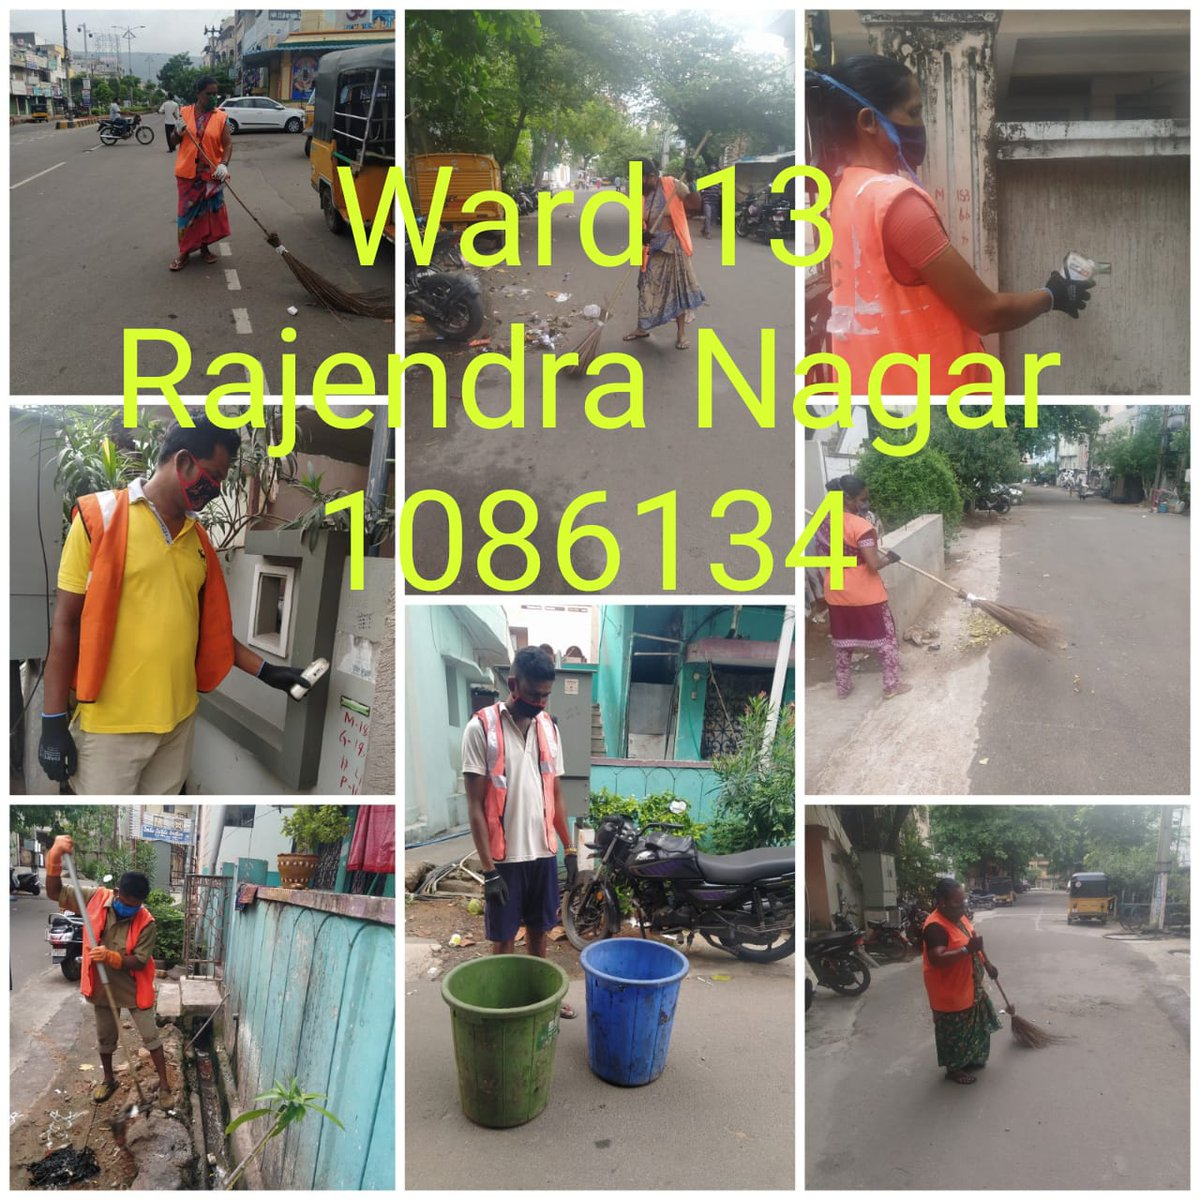 #SwachhataWarriors from Greater Visakhapatnam Municipal Corporation are working hard to stop the spread of #COVID19 & keep the city clean with the help of cleanliness & sanitization drives.  #MyCleanIndia #CitiesFightCorona https://t.co/PeX2XRL7FO